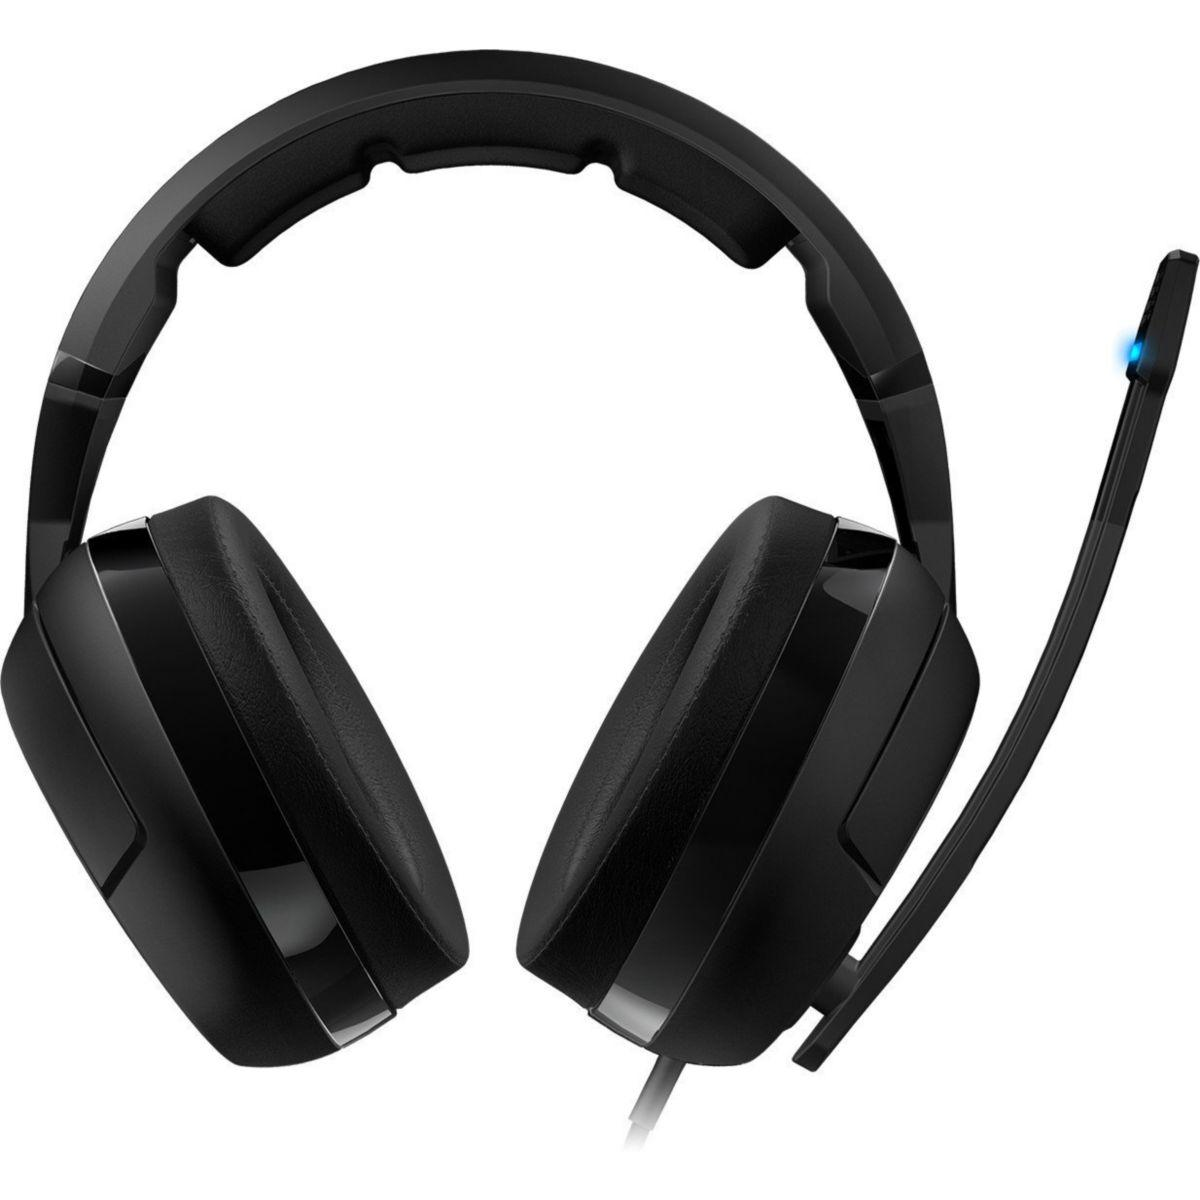 Casque micro gamer roccat kave xtd 5.1 analog (photo)